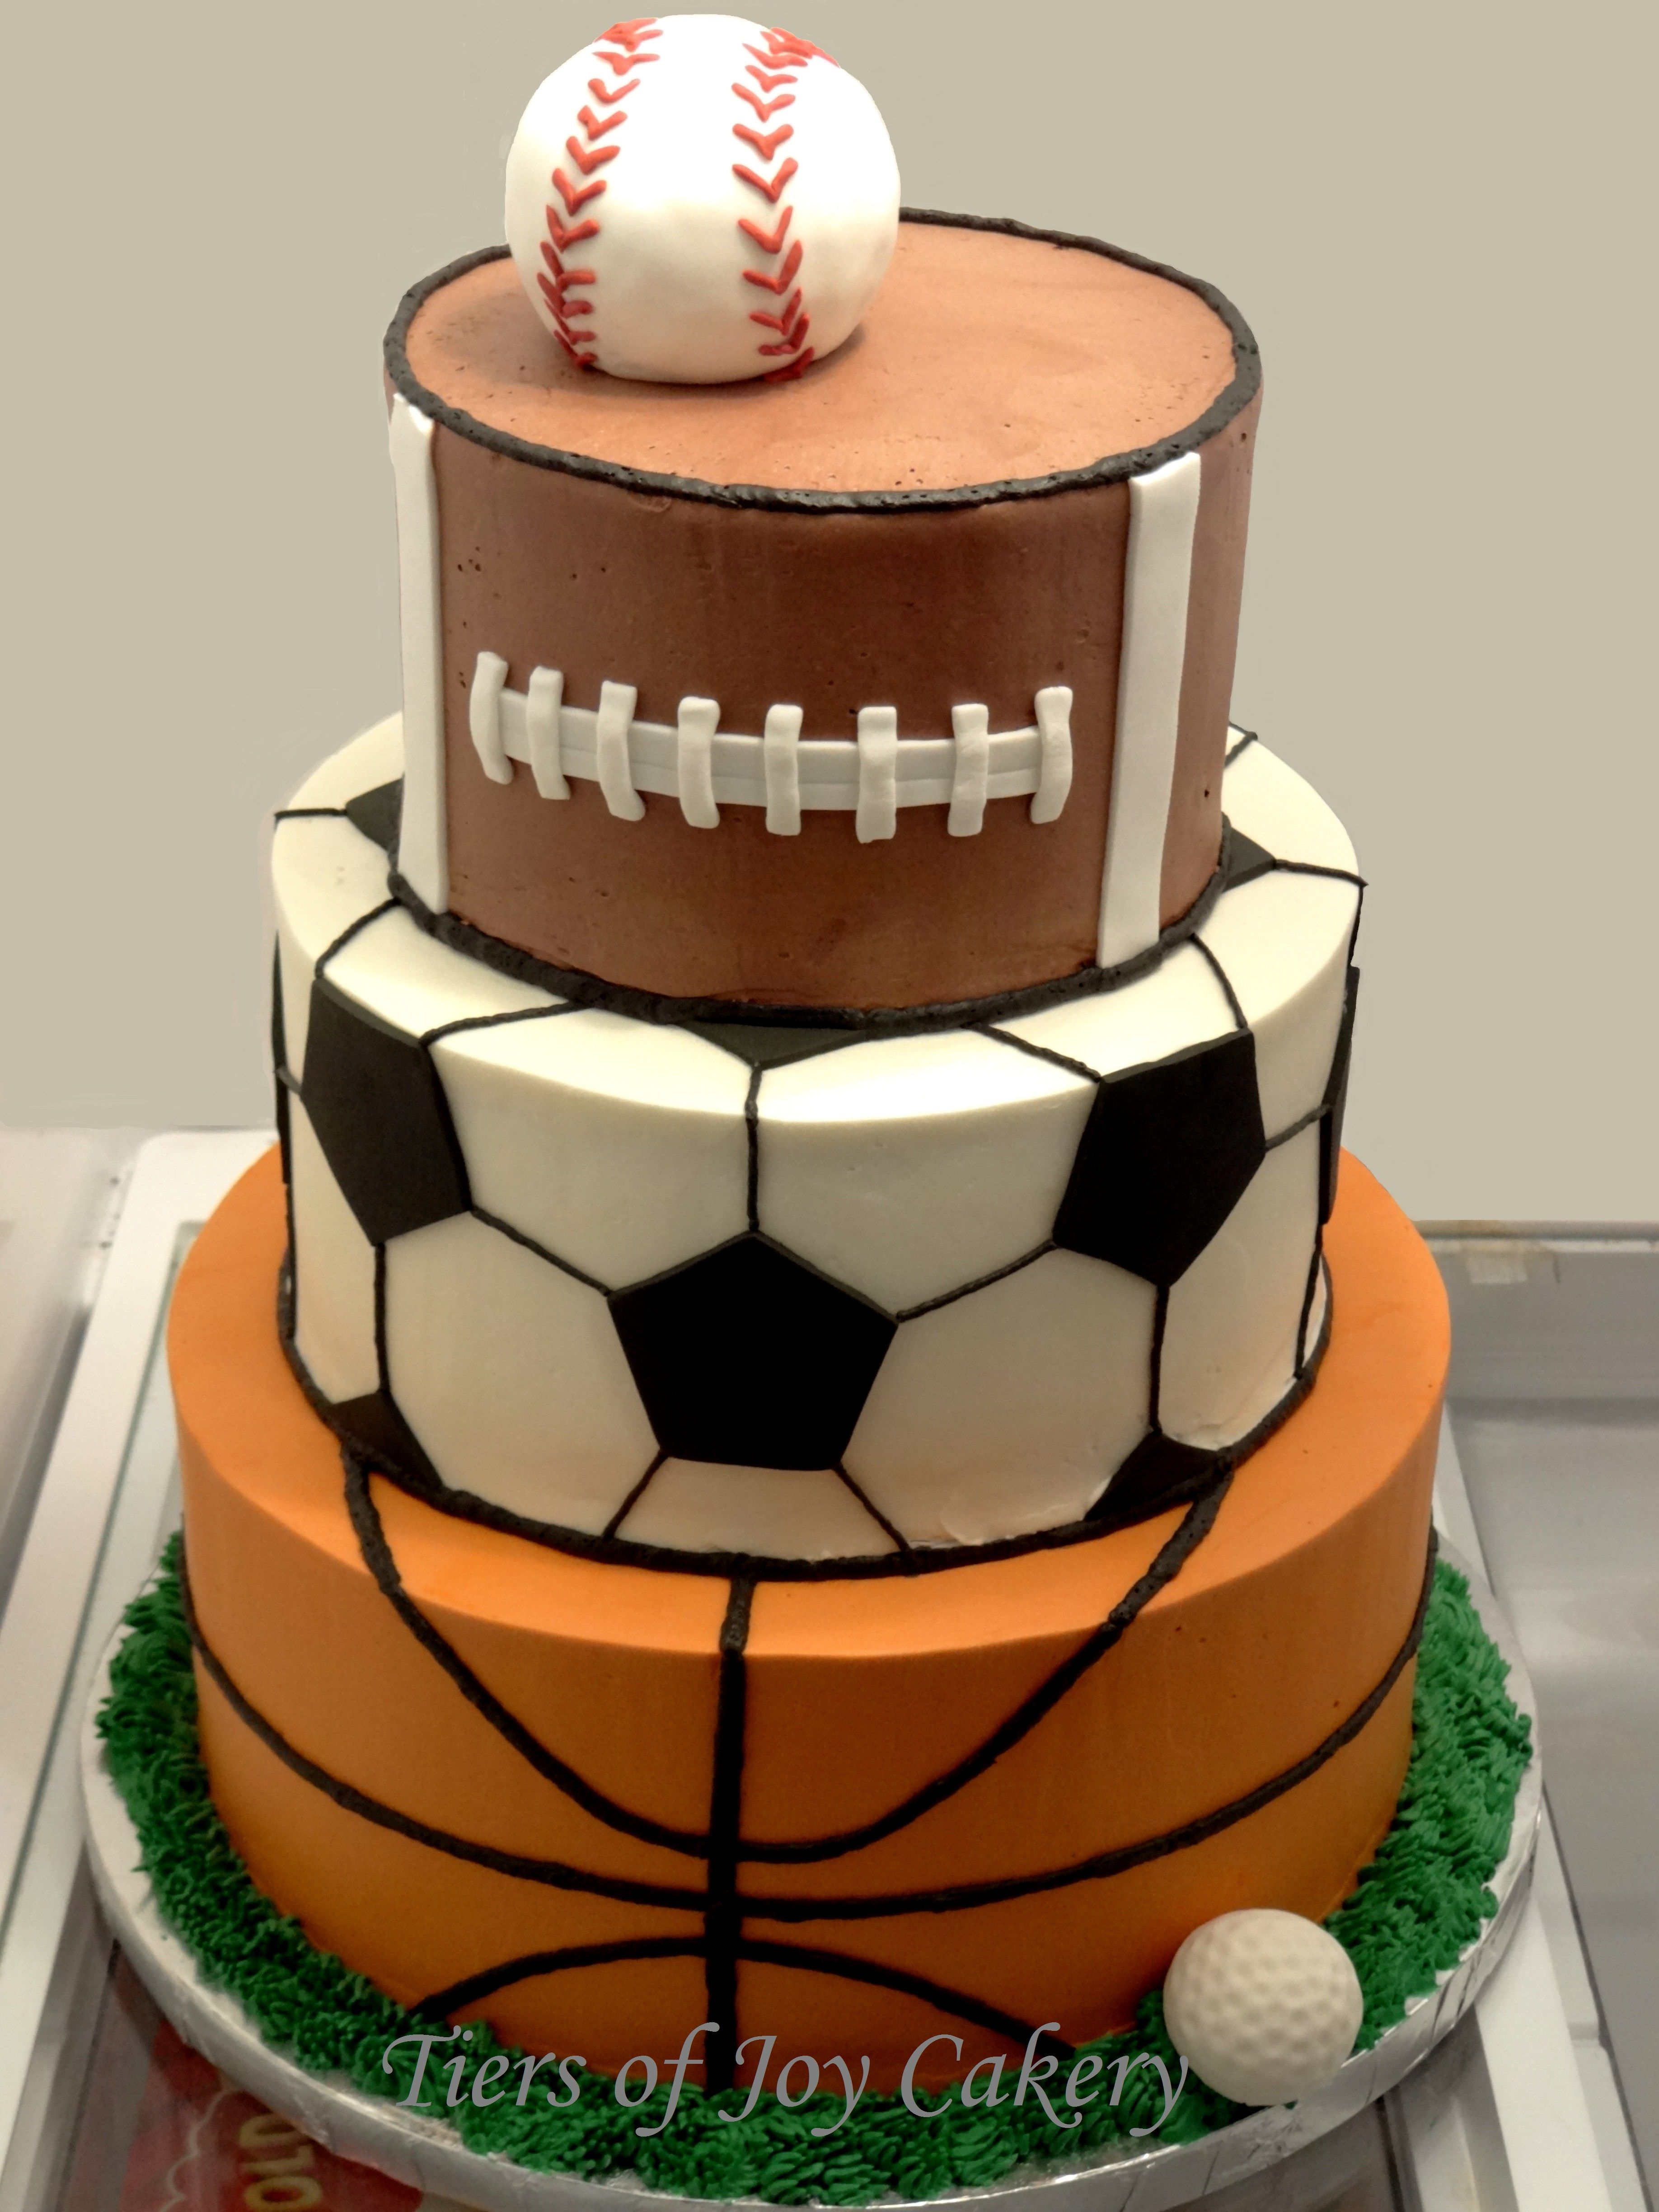 Sports Balls Cake With Baseball Football Soccer Ball